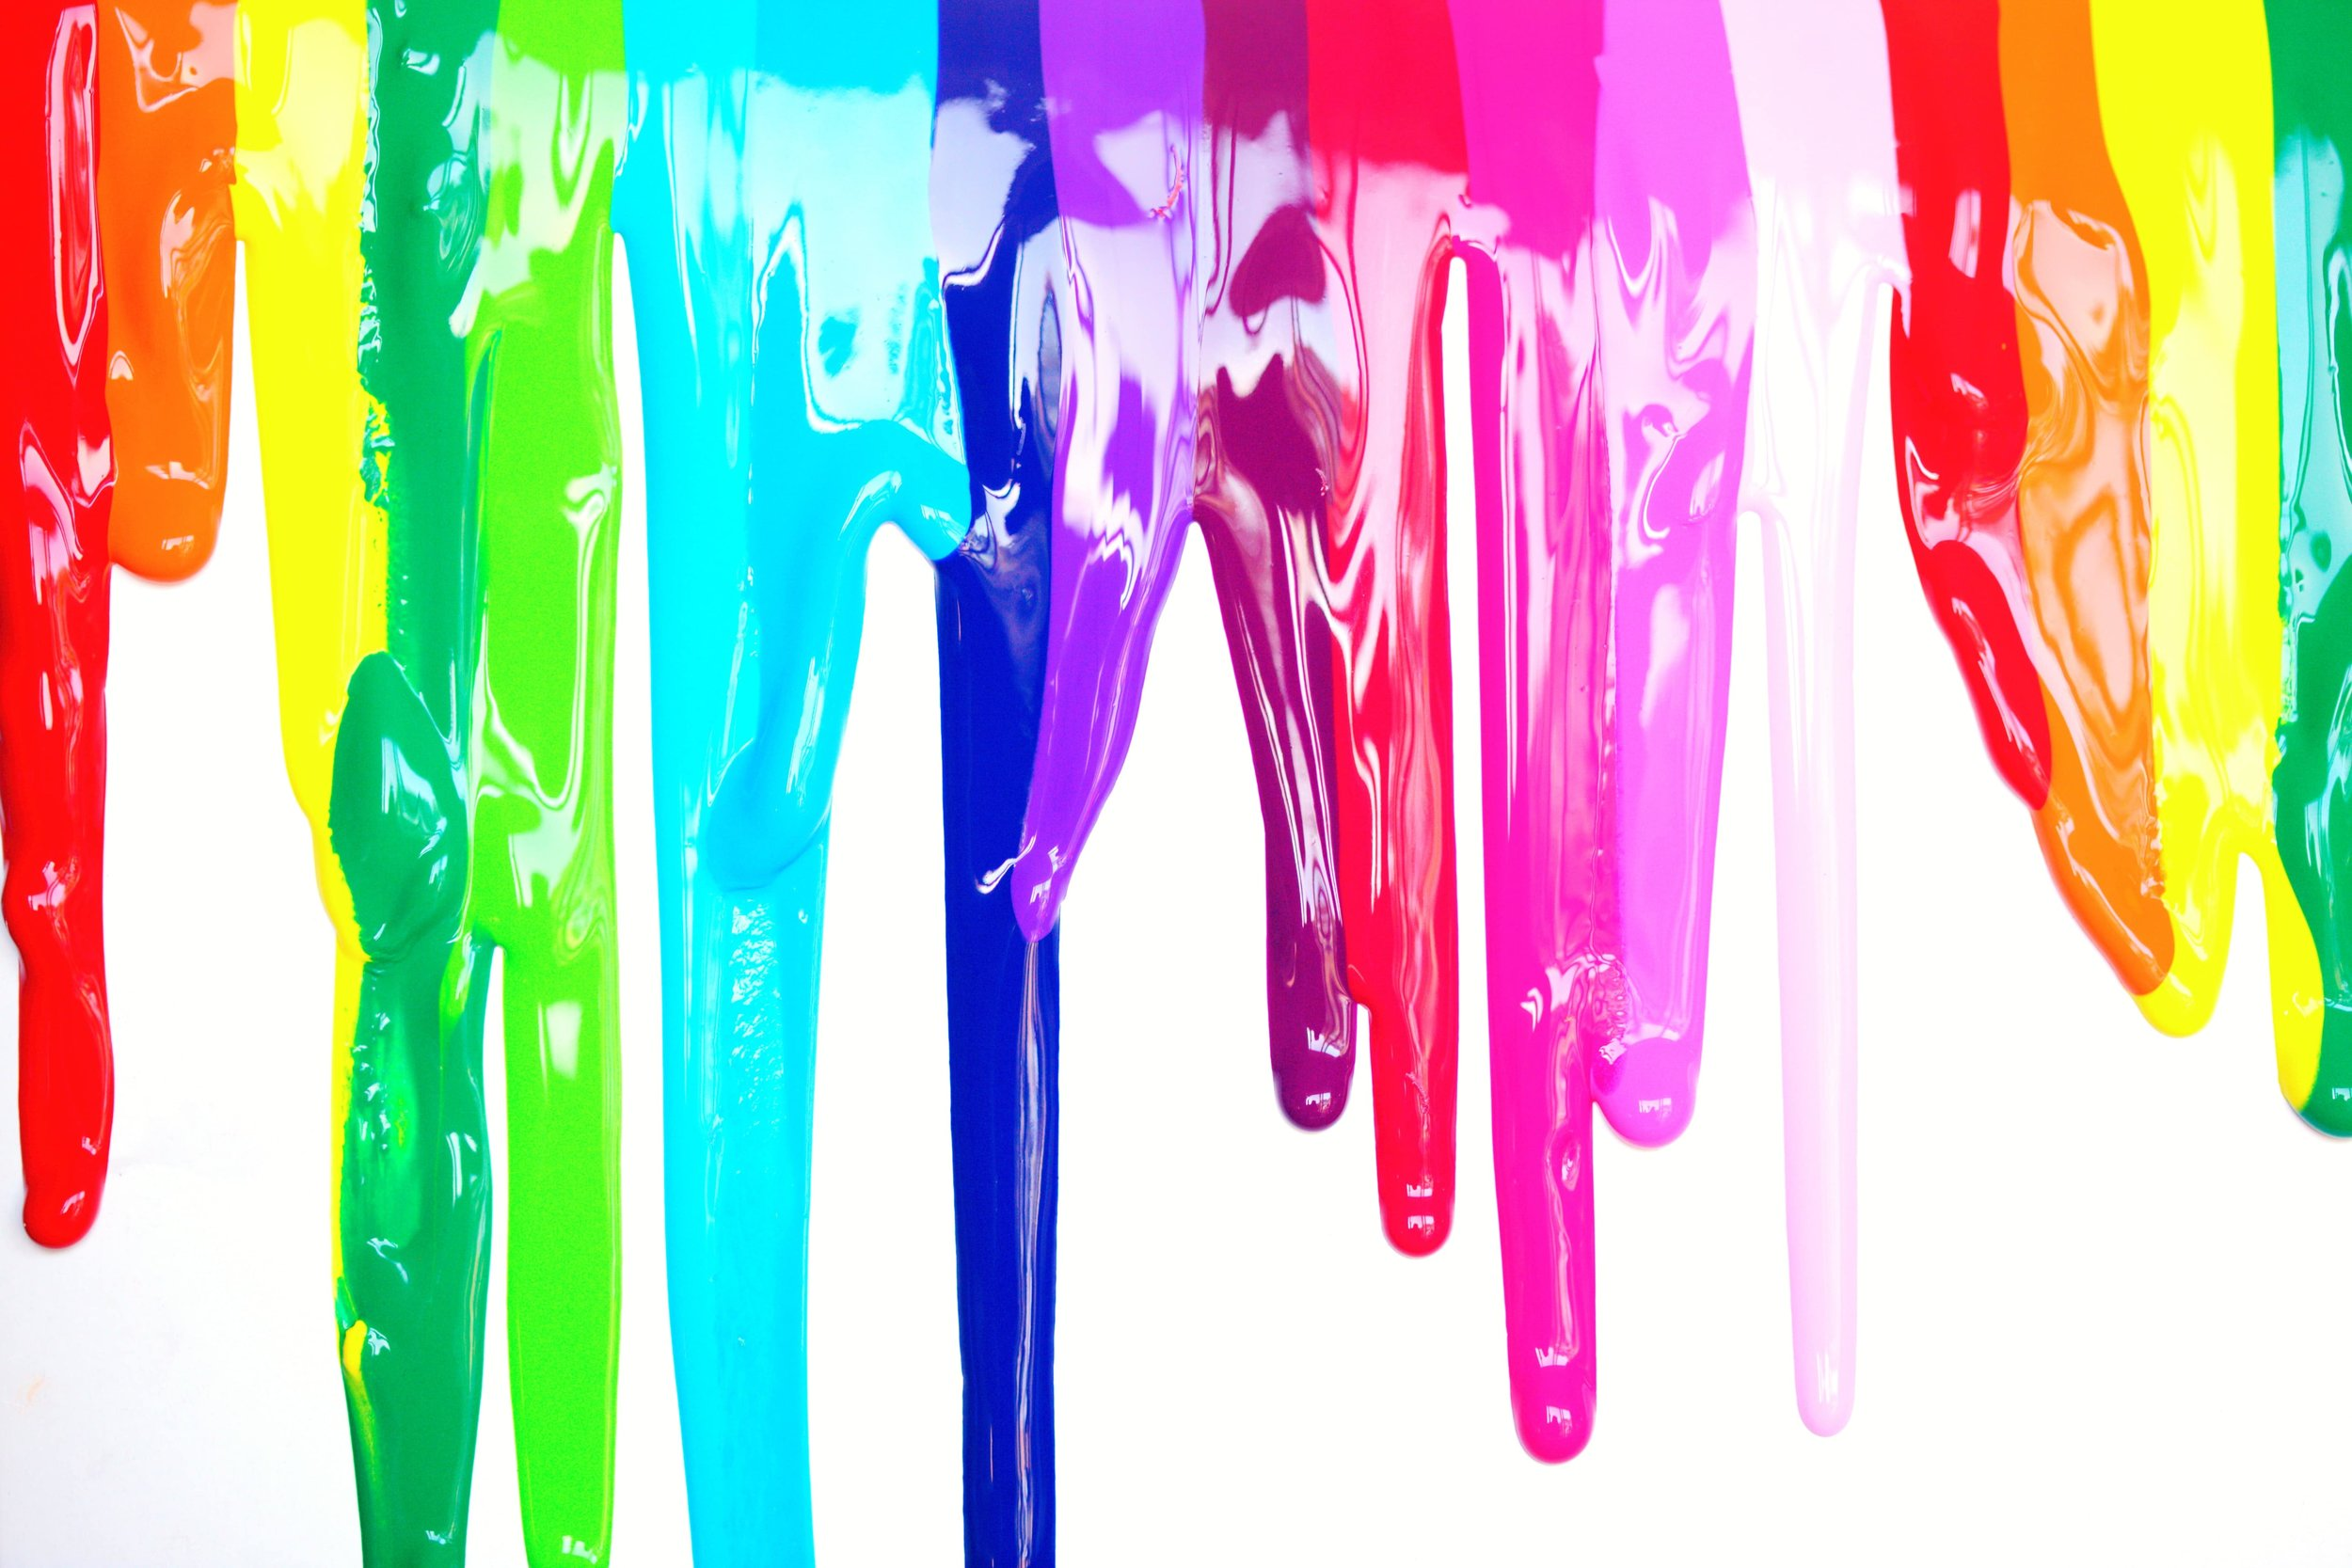 5 Creative Diy Paint Splatter Projects To Try Skillshare